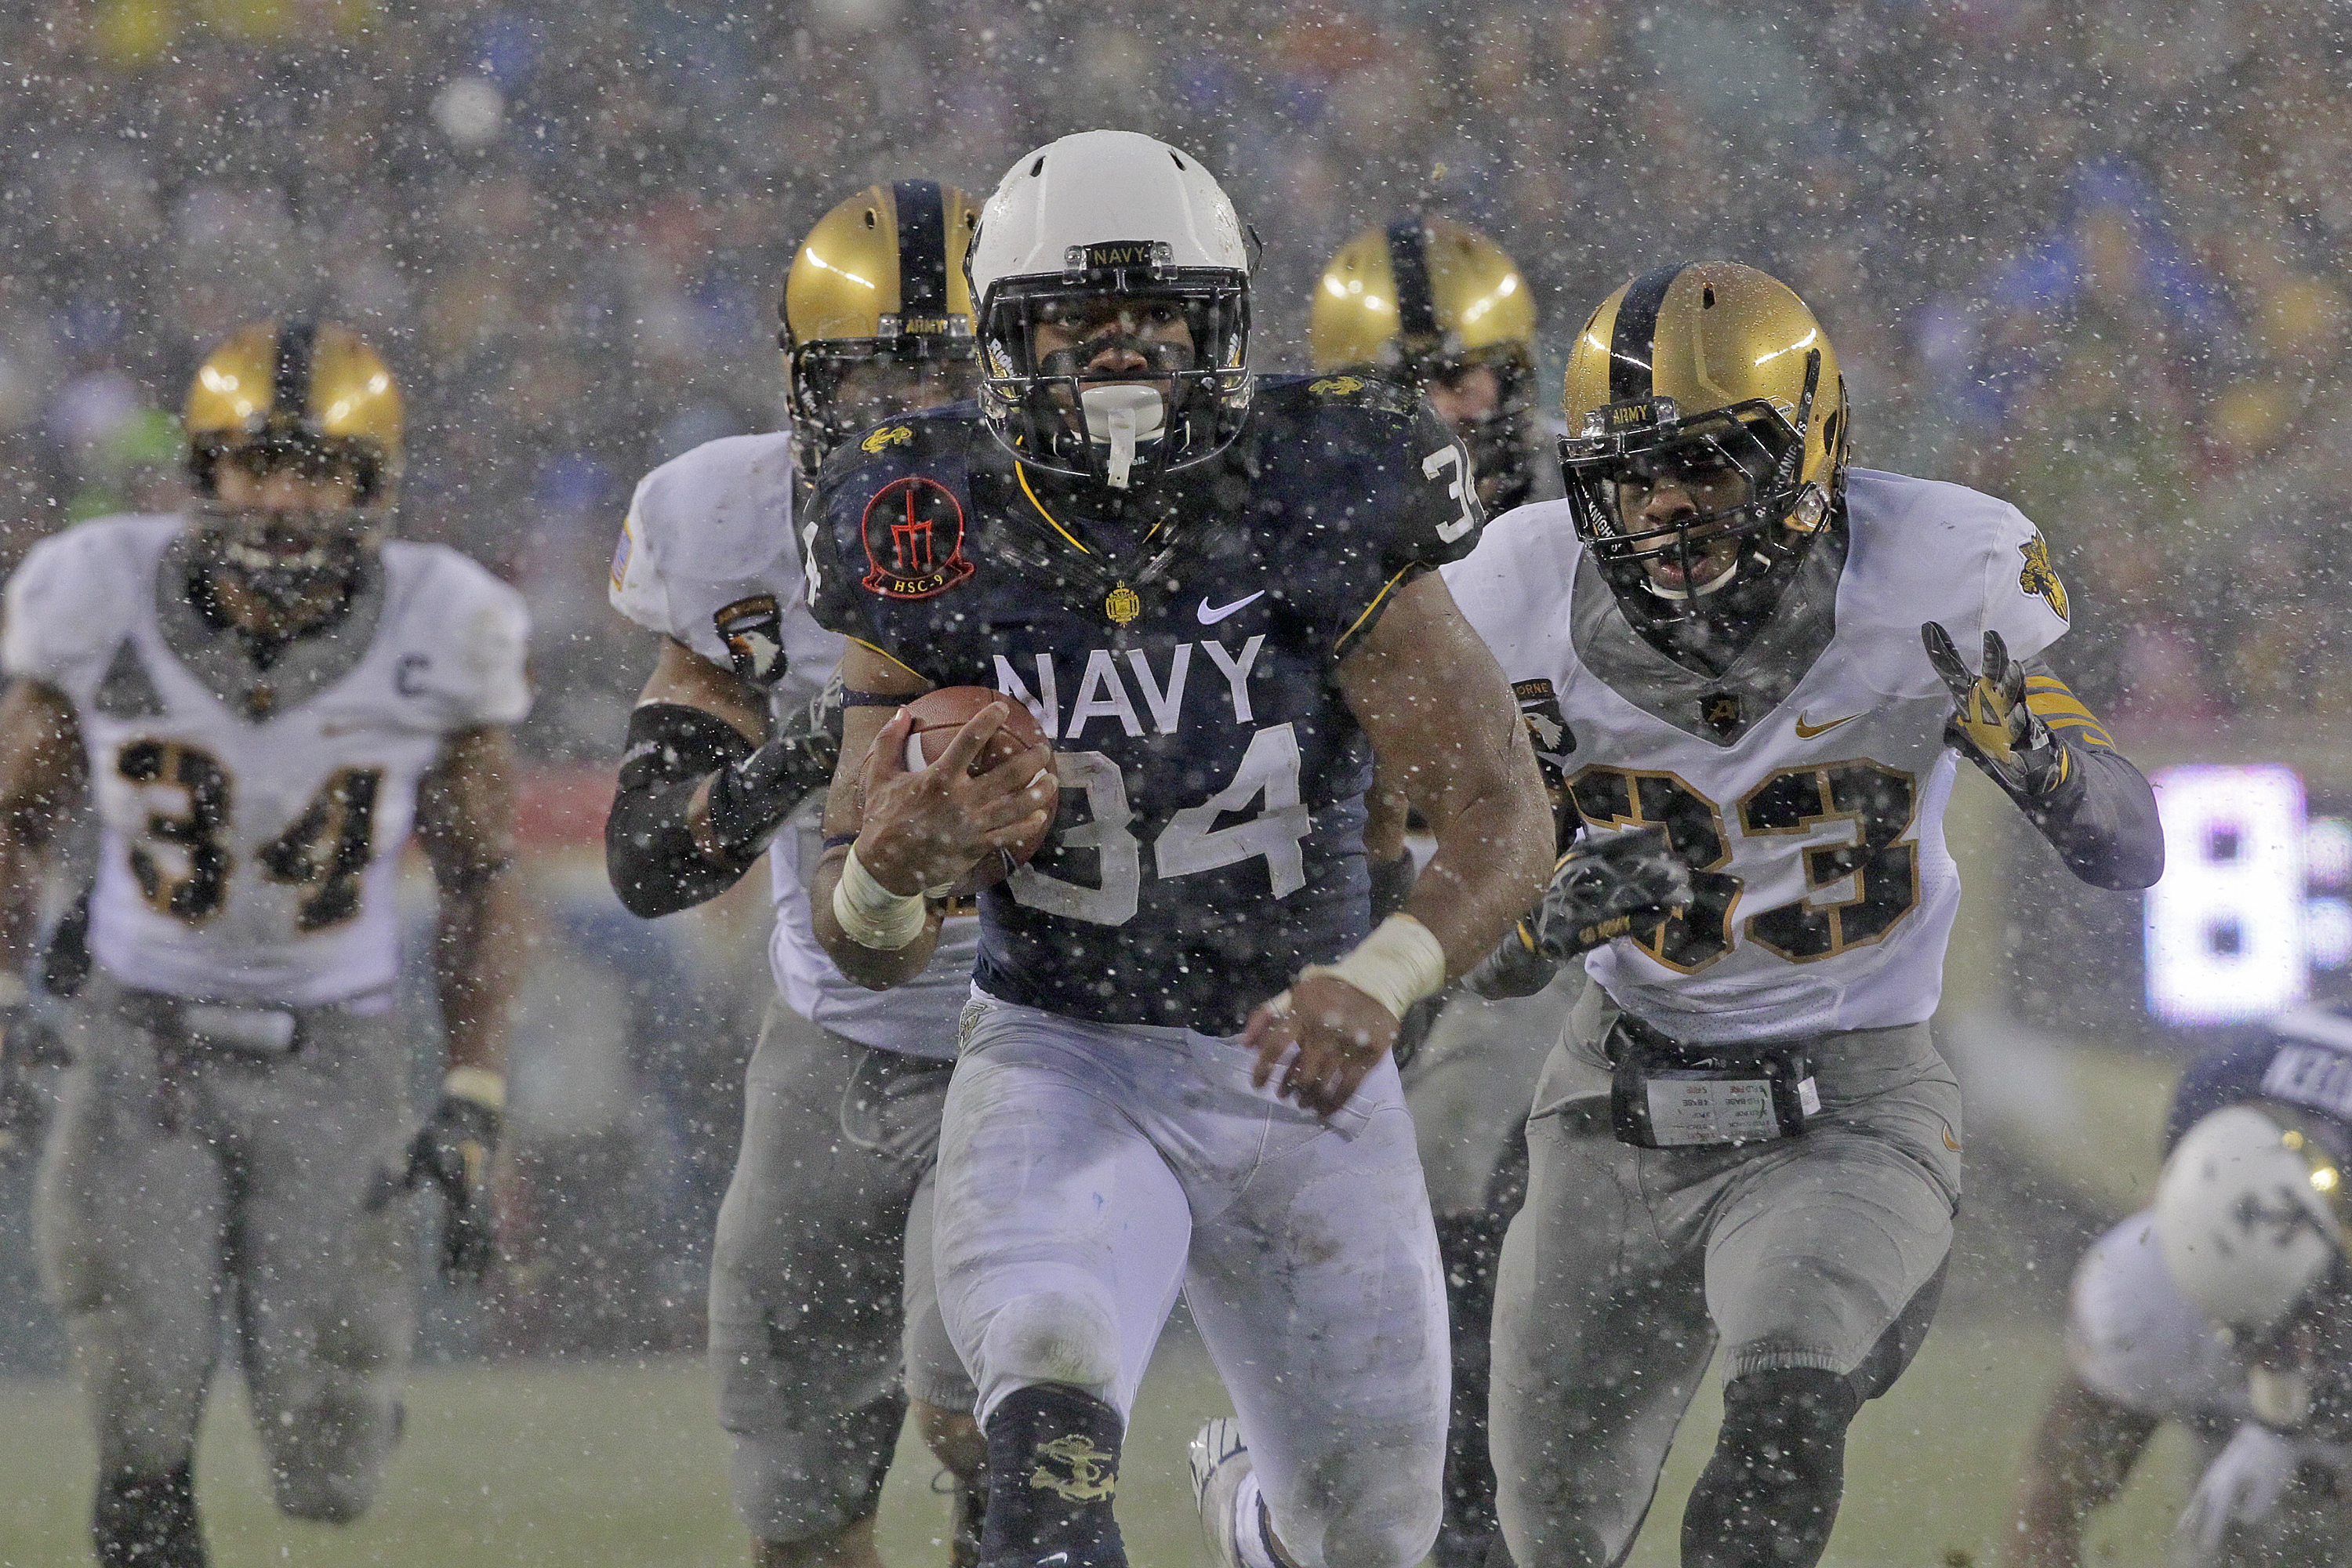 Inspiring Army-Navy Prayer, Anthem Upstages Barnburner of a Snowy Rivalry Game